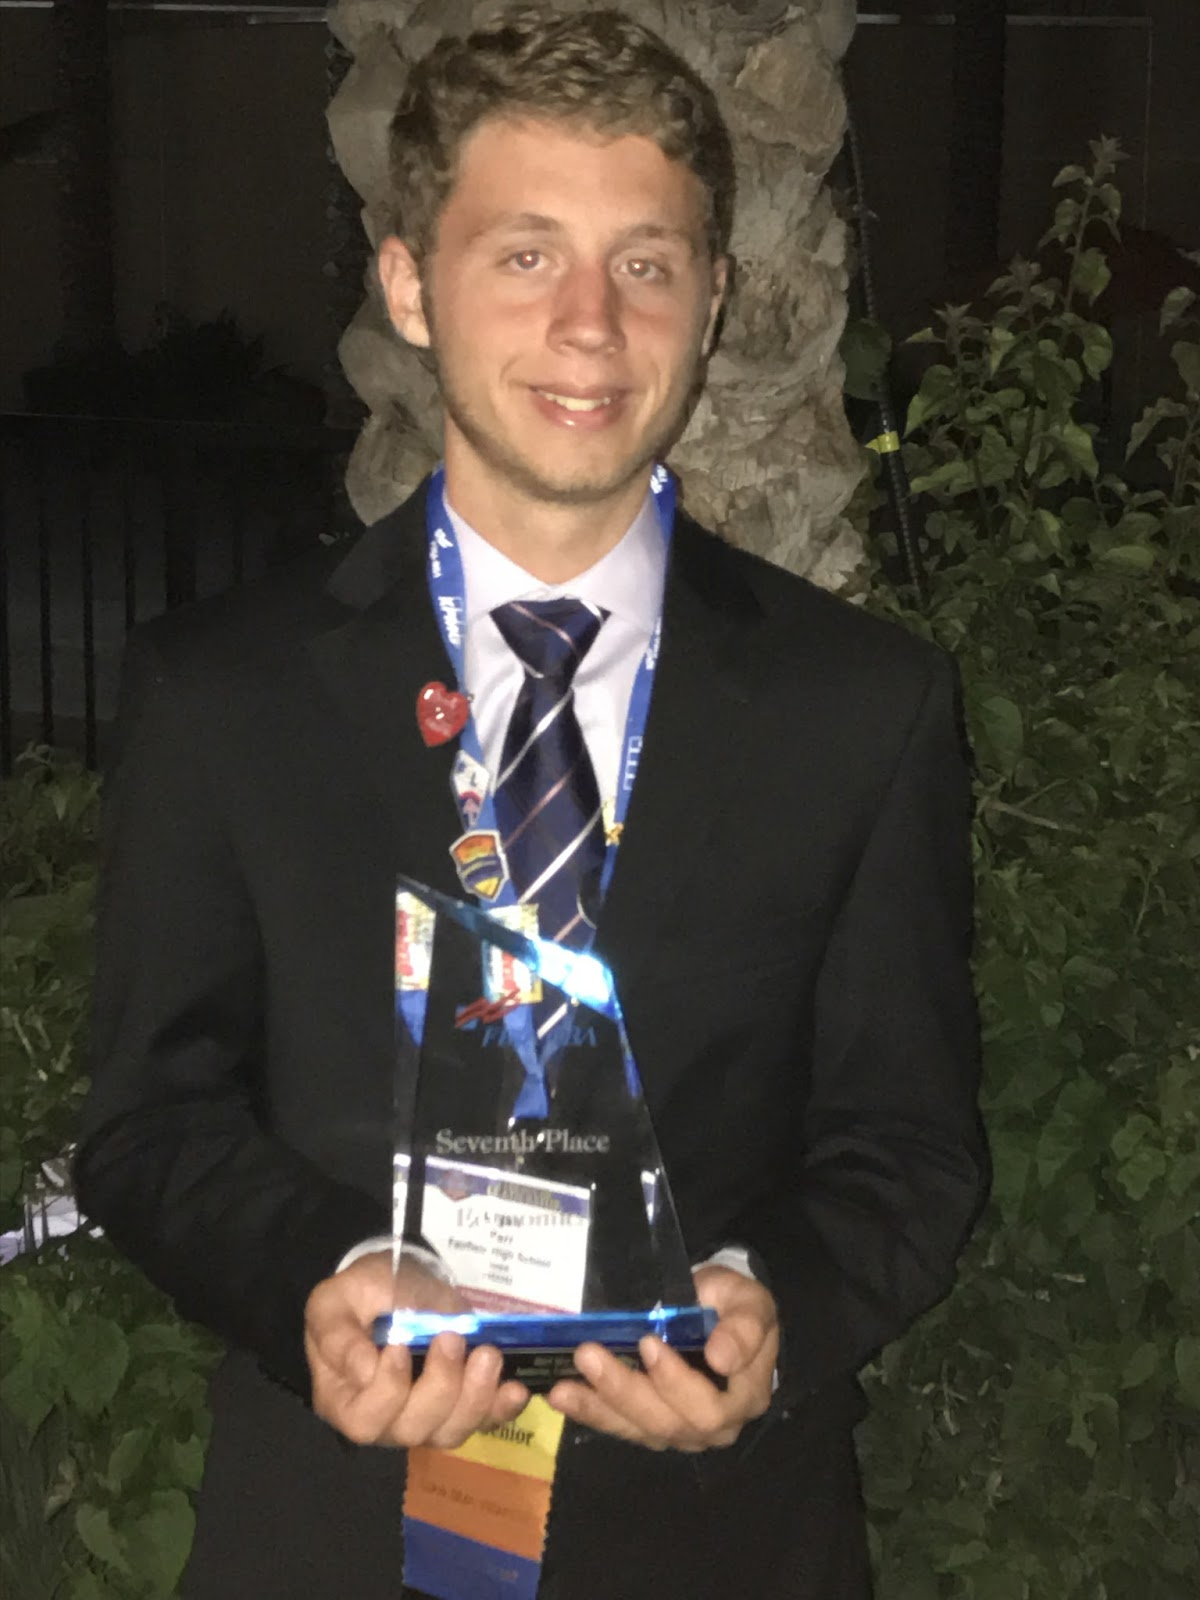 ellijah parr 7th place national economics winner fbla 2017.JPG